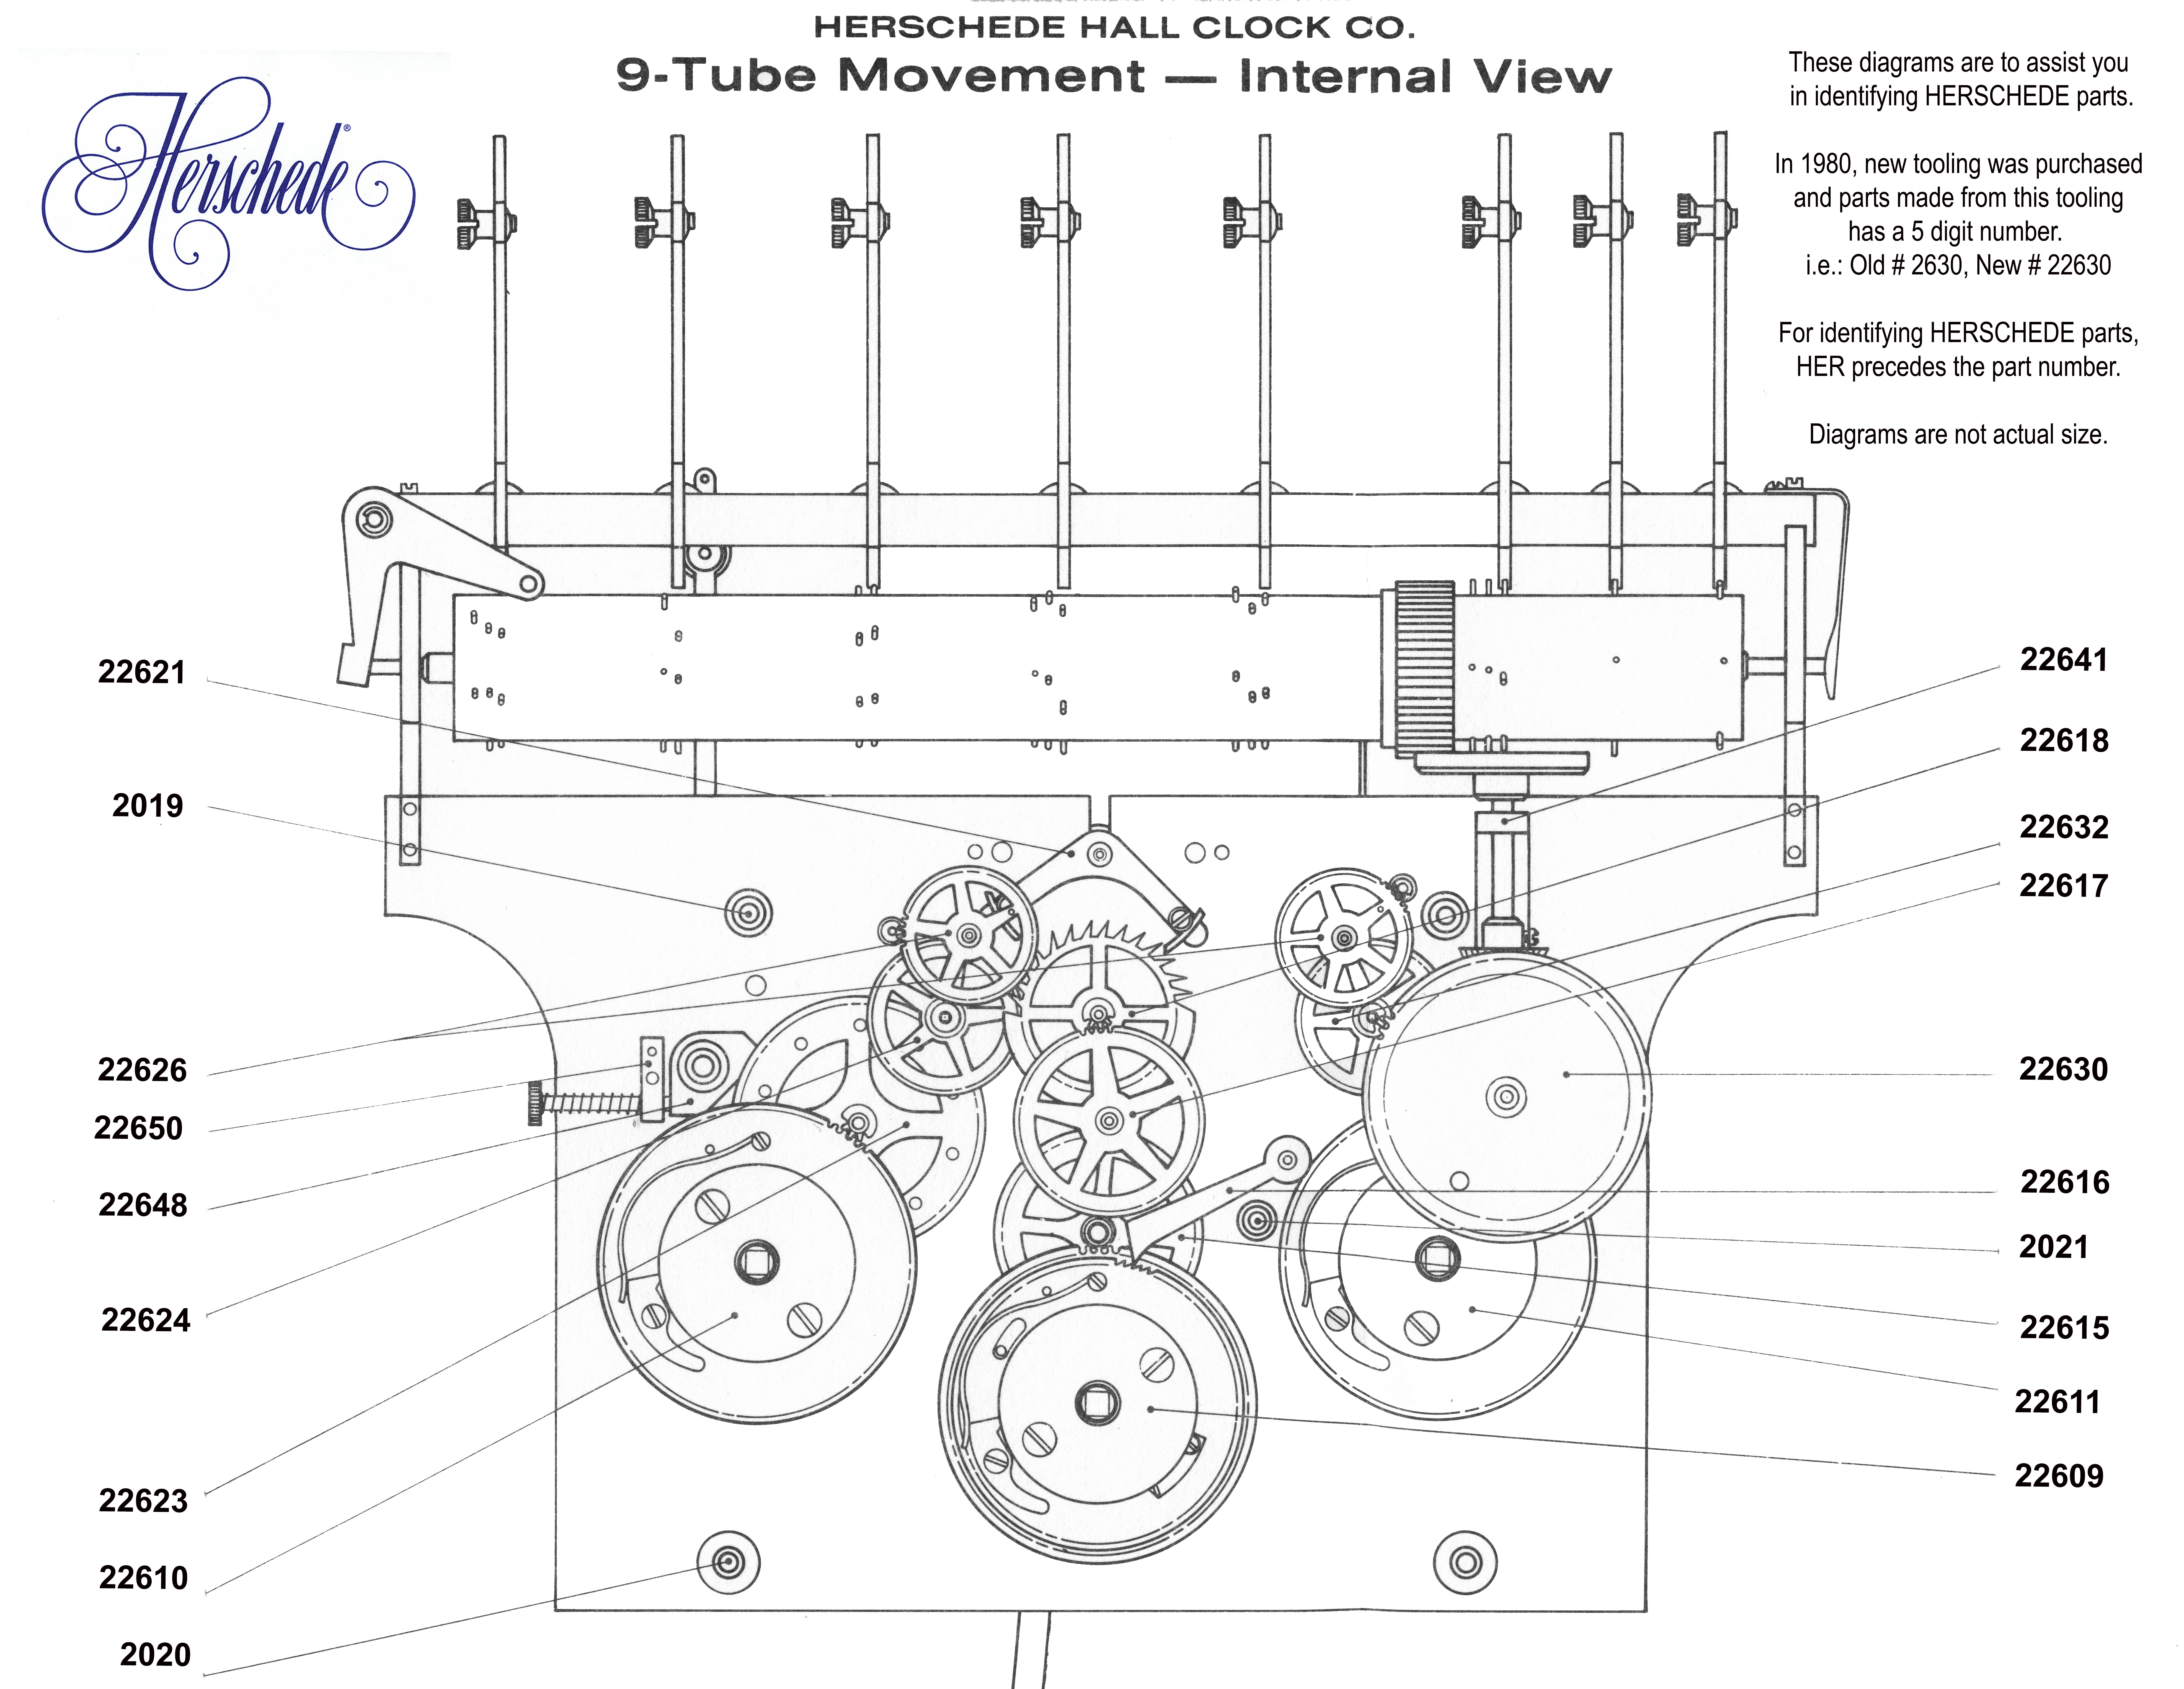 her-9-tube-internal-mov-view-with-pn-r1.jpg